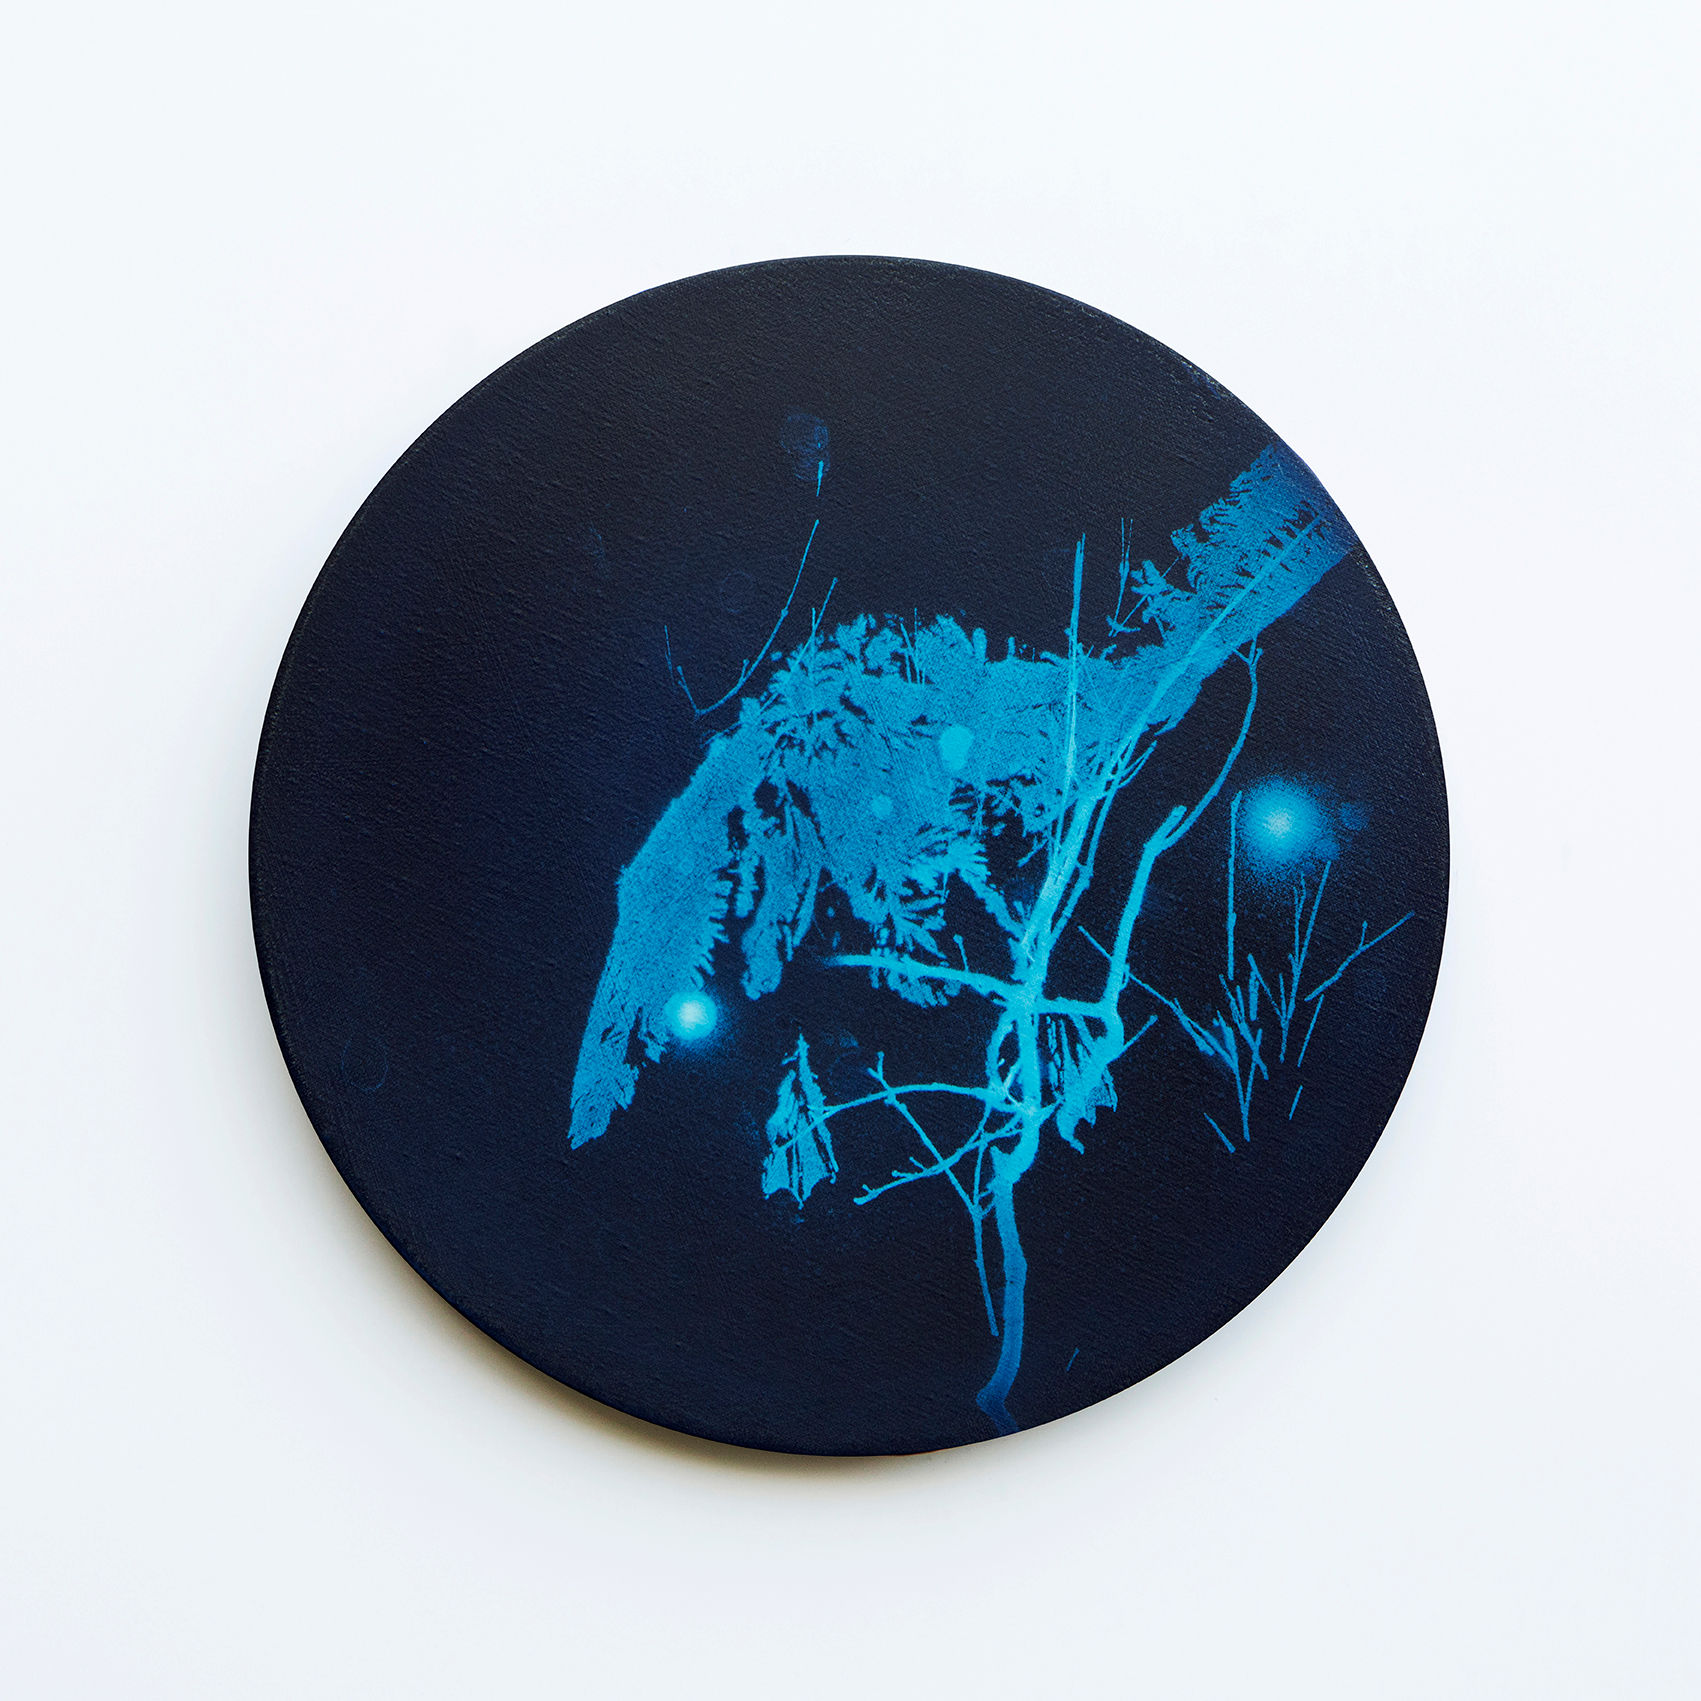 WATERSCAPE_내 안의 바깥 06, Diameter 40cm, Traditional pigment, water-print, water-drawing on canvas, 2018